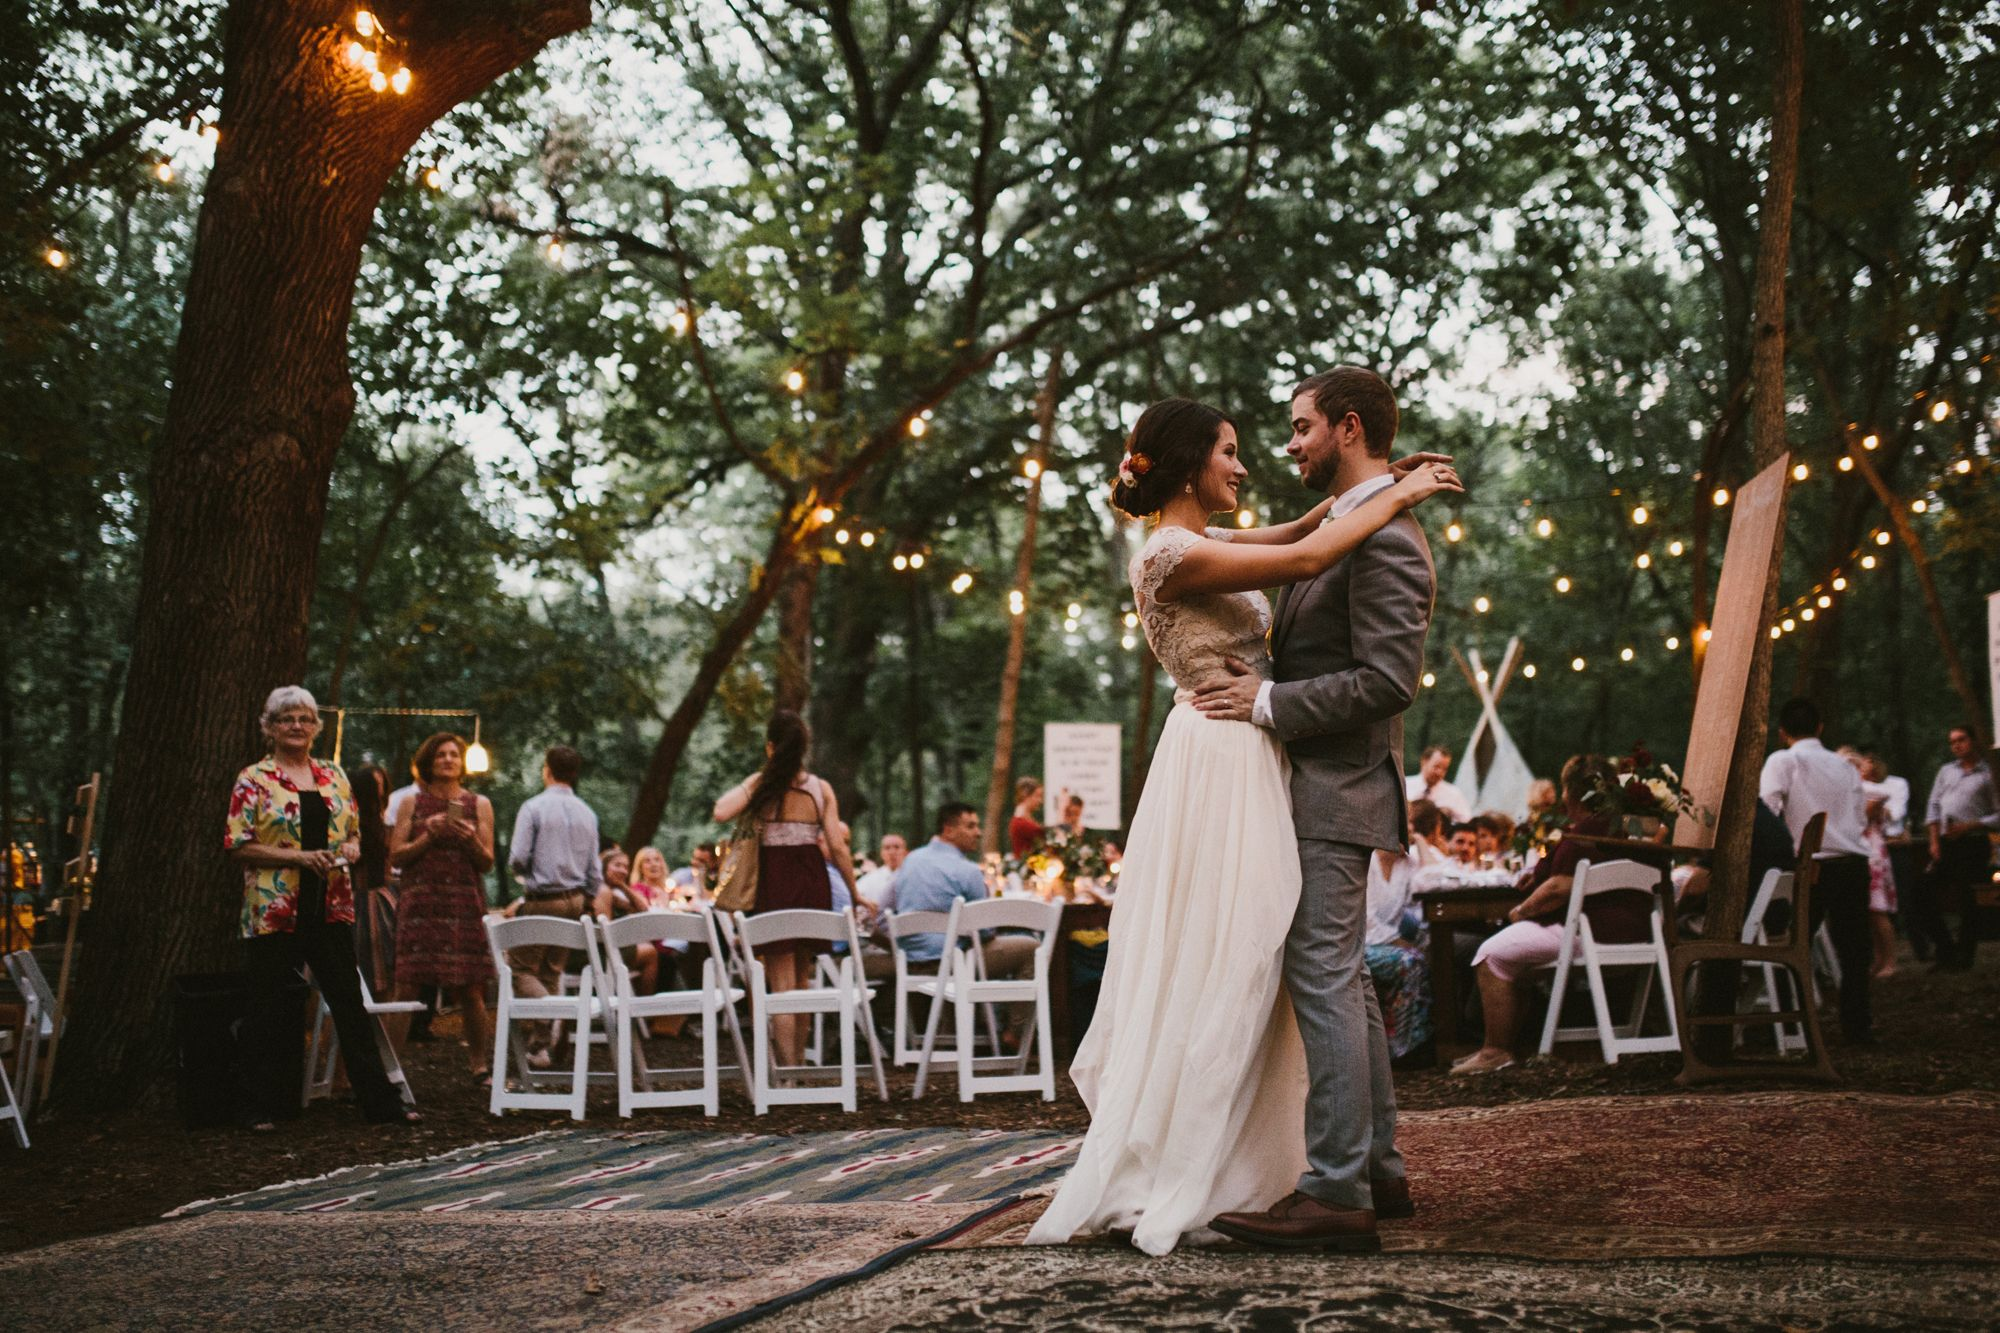 Diy Backyard Wedding In The Woods Reception String Lights First Dance Rug